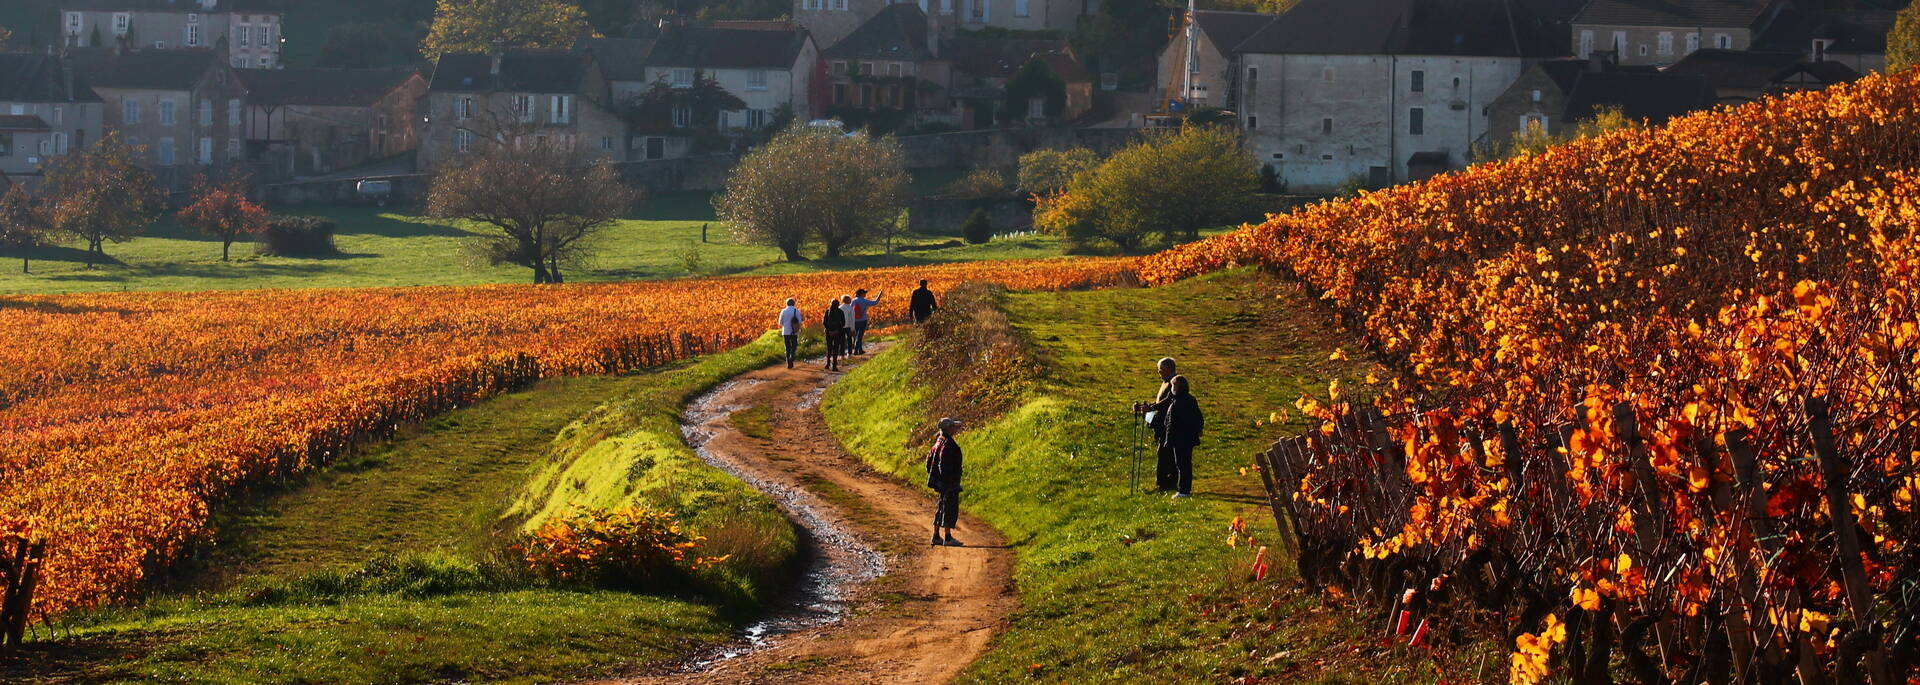 Randonnée Givry Russilly Automne